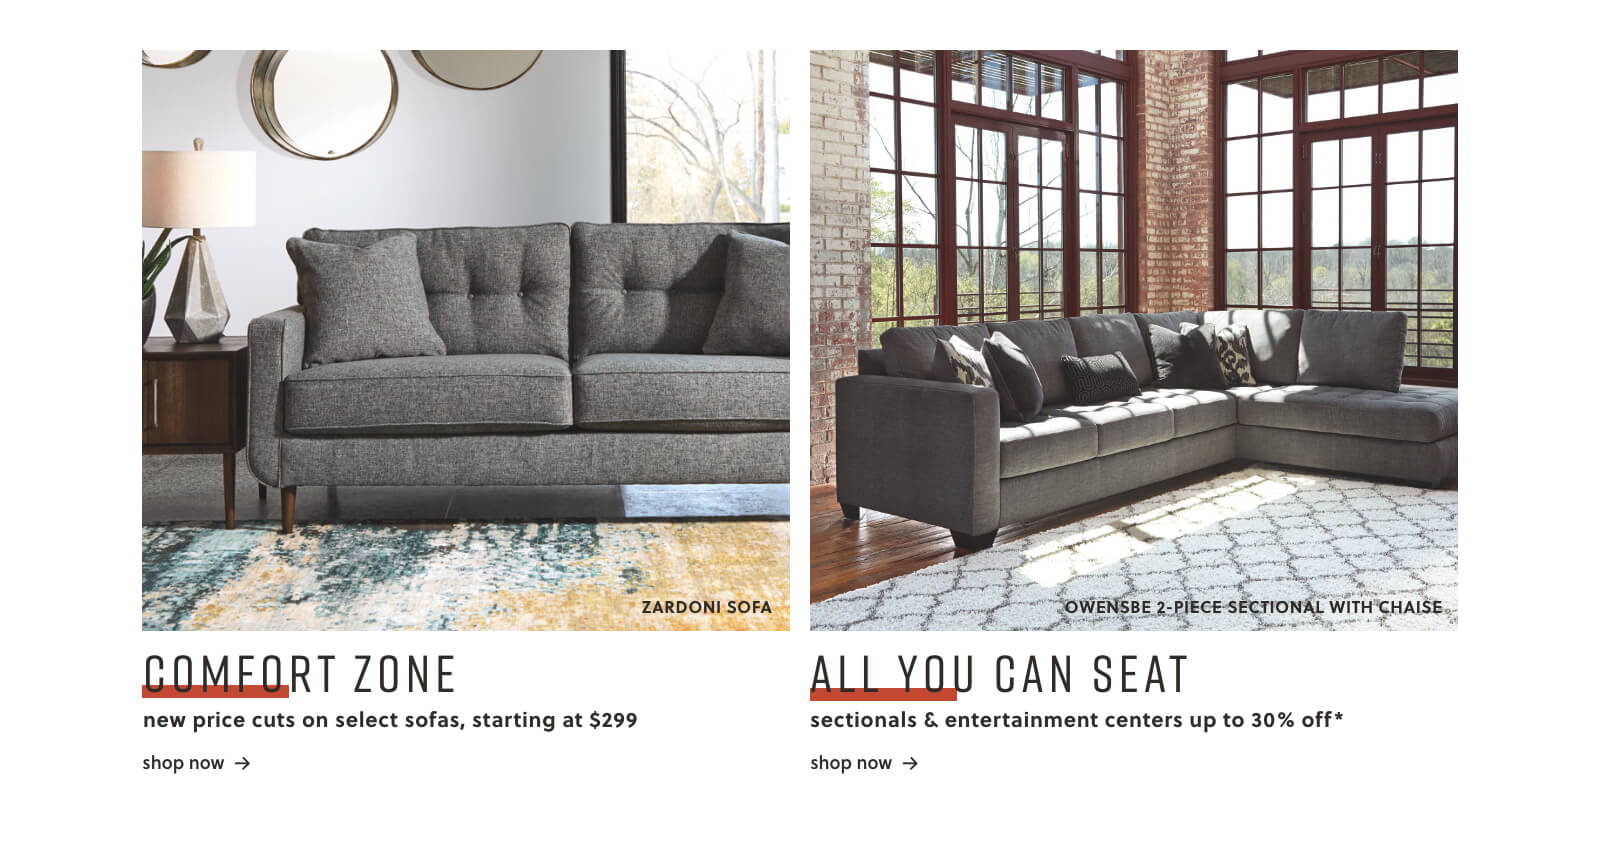 Ashley Furniture HomeStore | Home Furniture & Decor | Ashley HomeStore